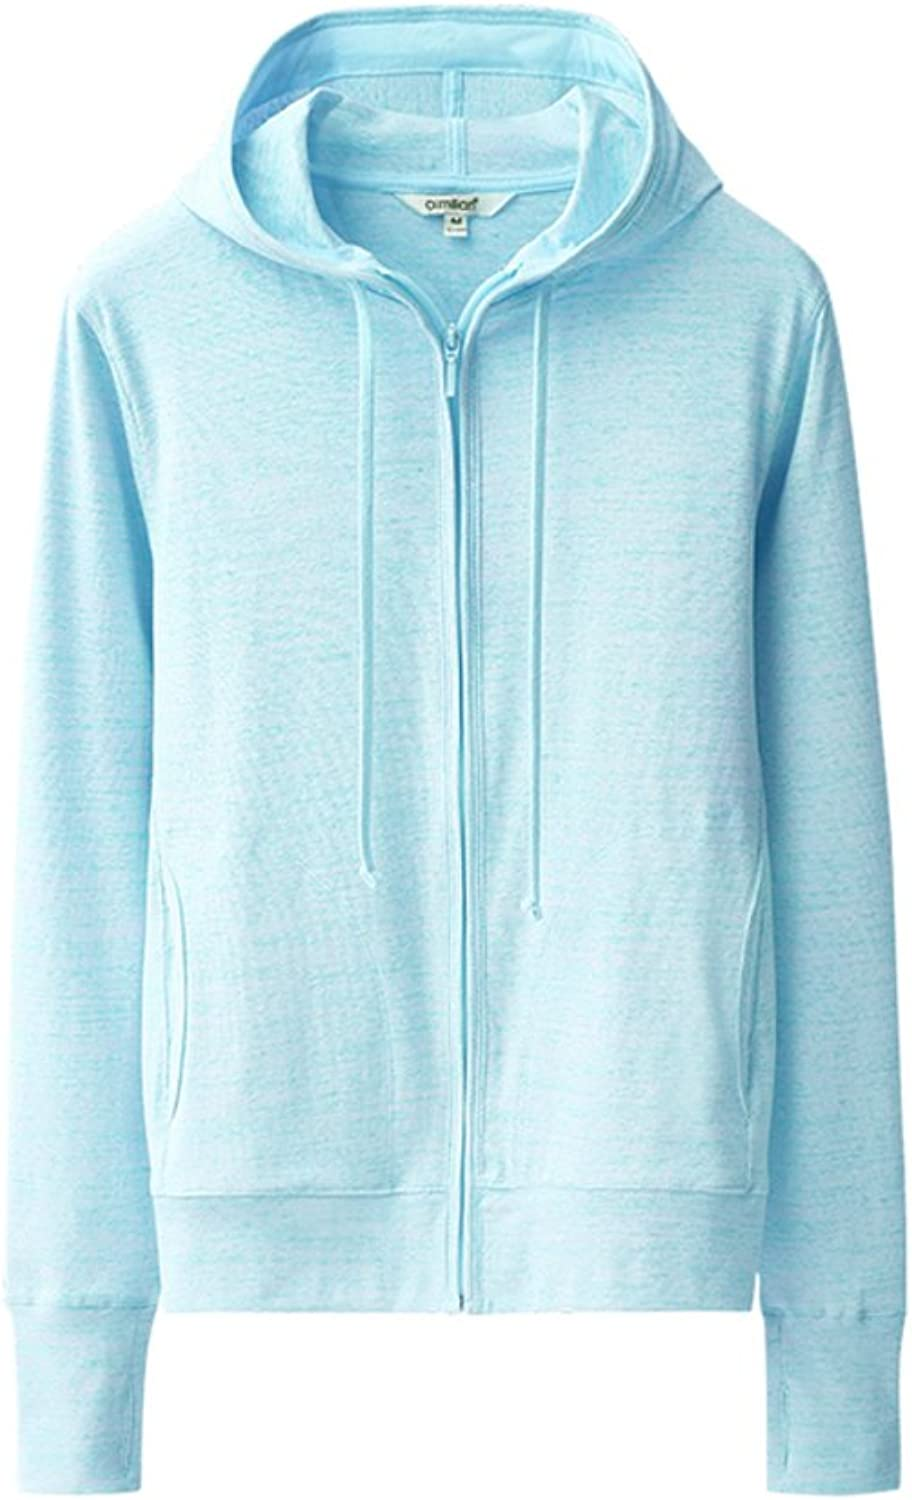 Women's cardigan,zip leisure hooded long sleeve sweaters(assorted colors)bluee XL